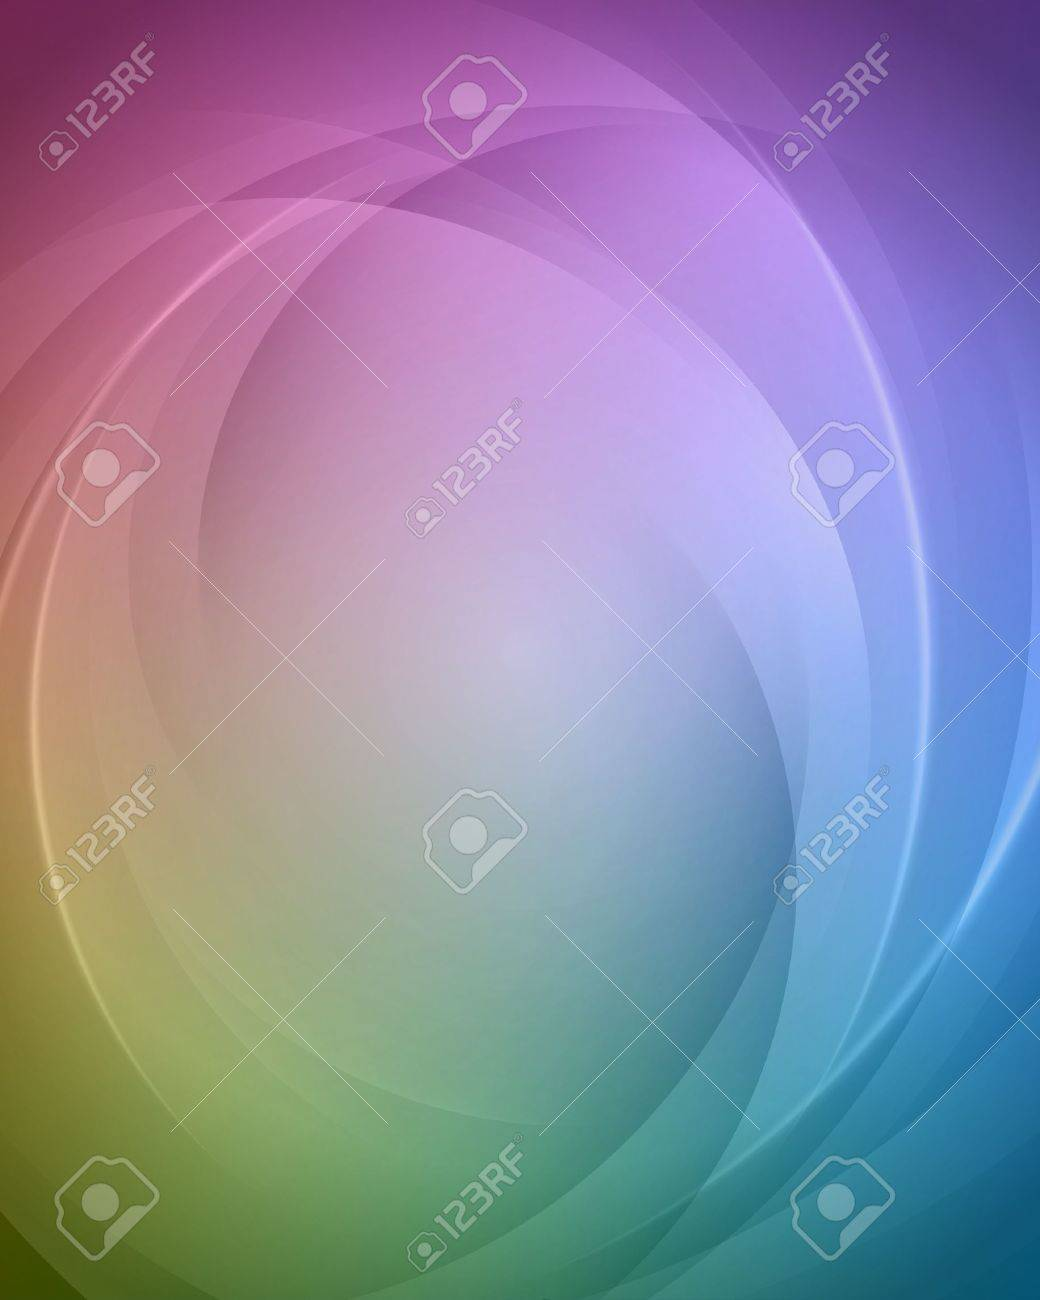 Abstract light background Stock Vector - 18783267